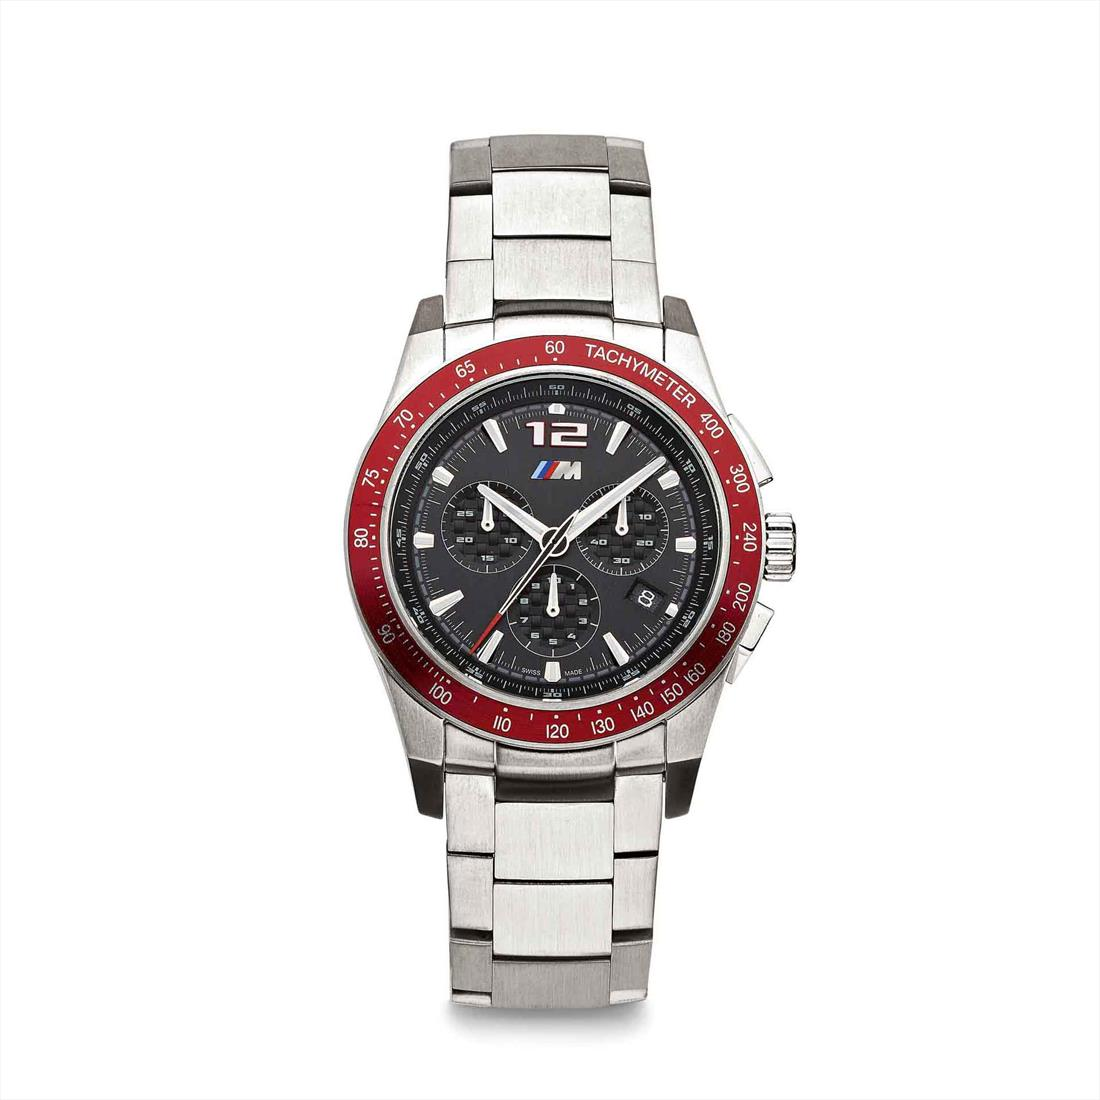 BMW M CHRONOGRAPH WATCH